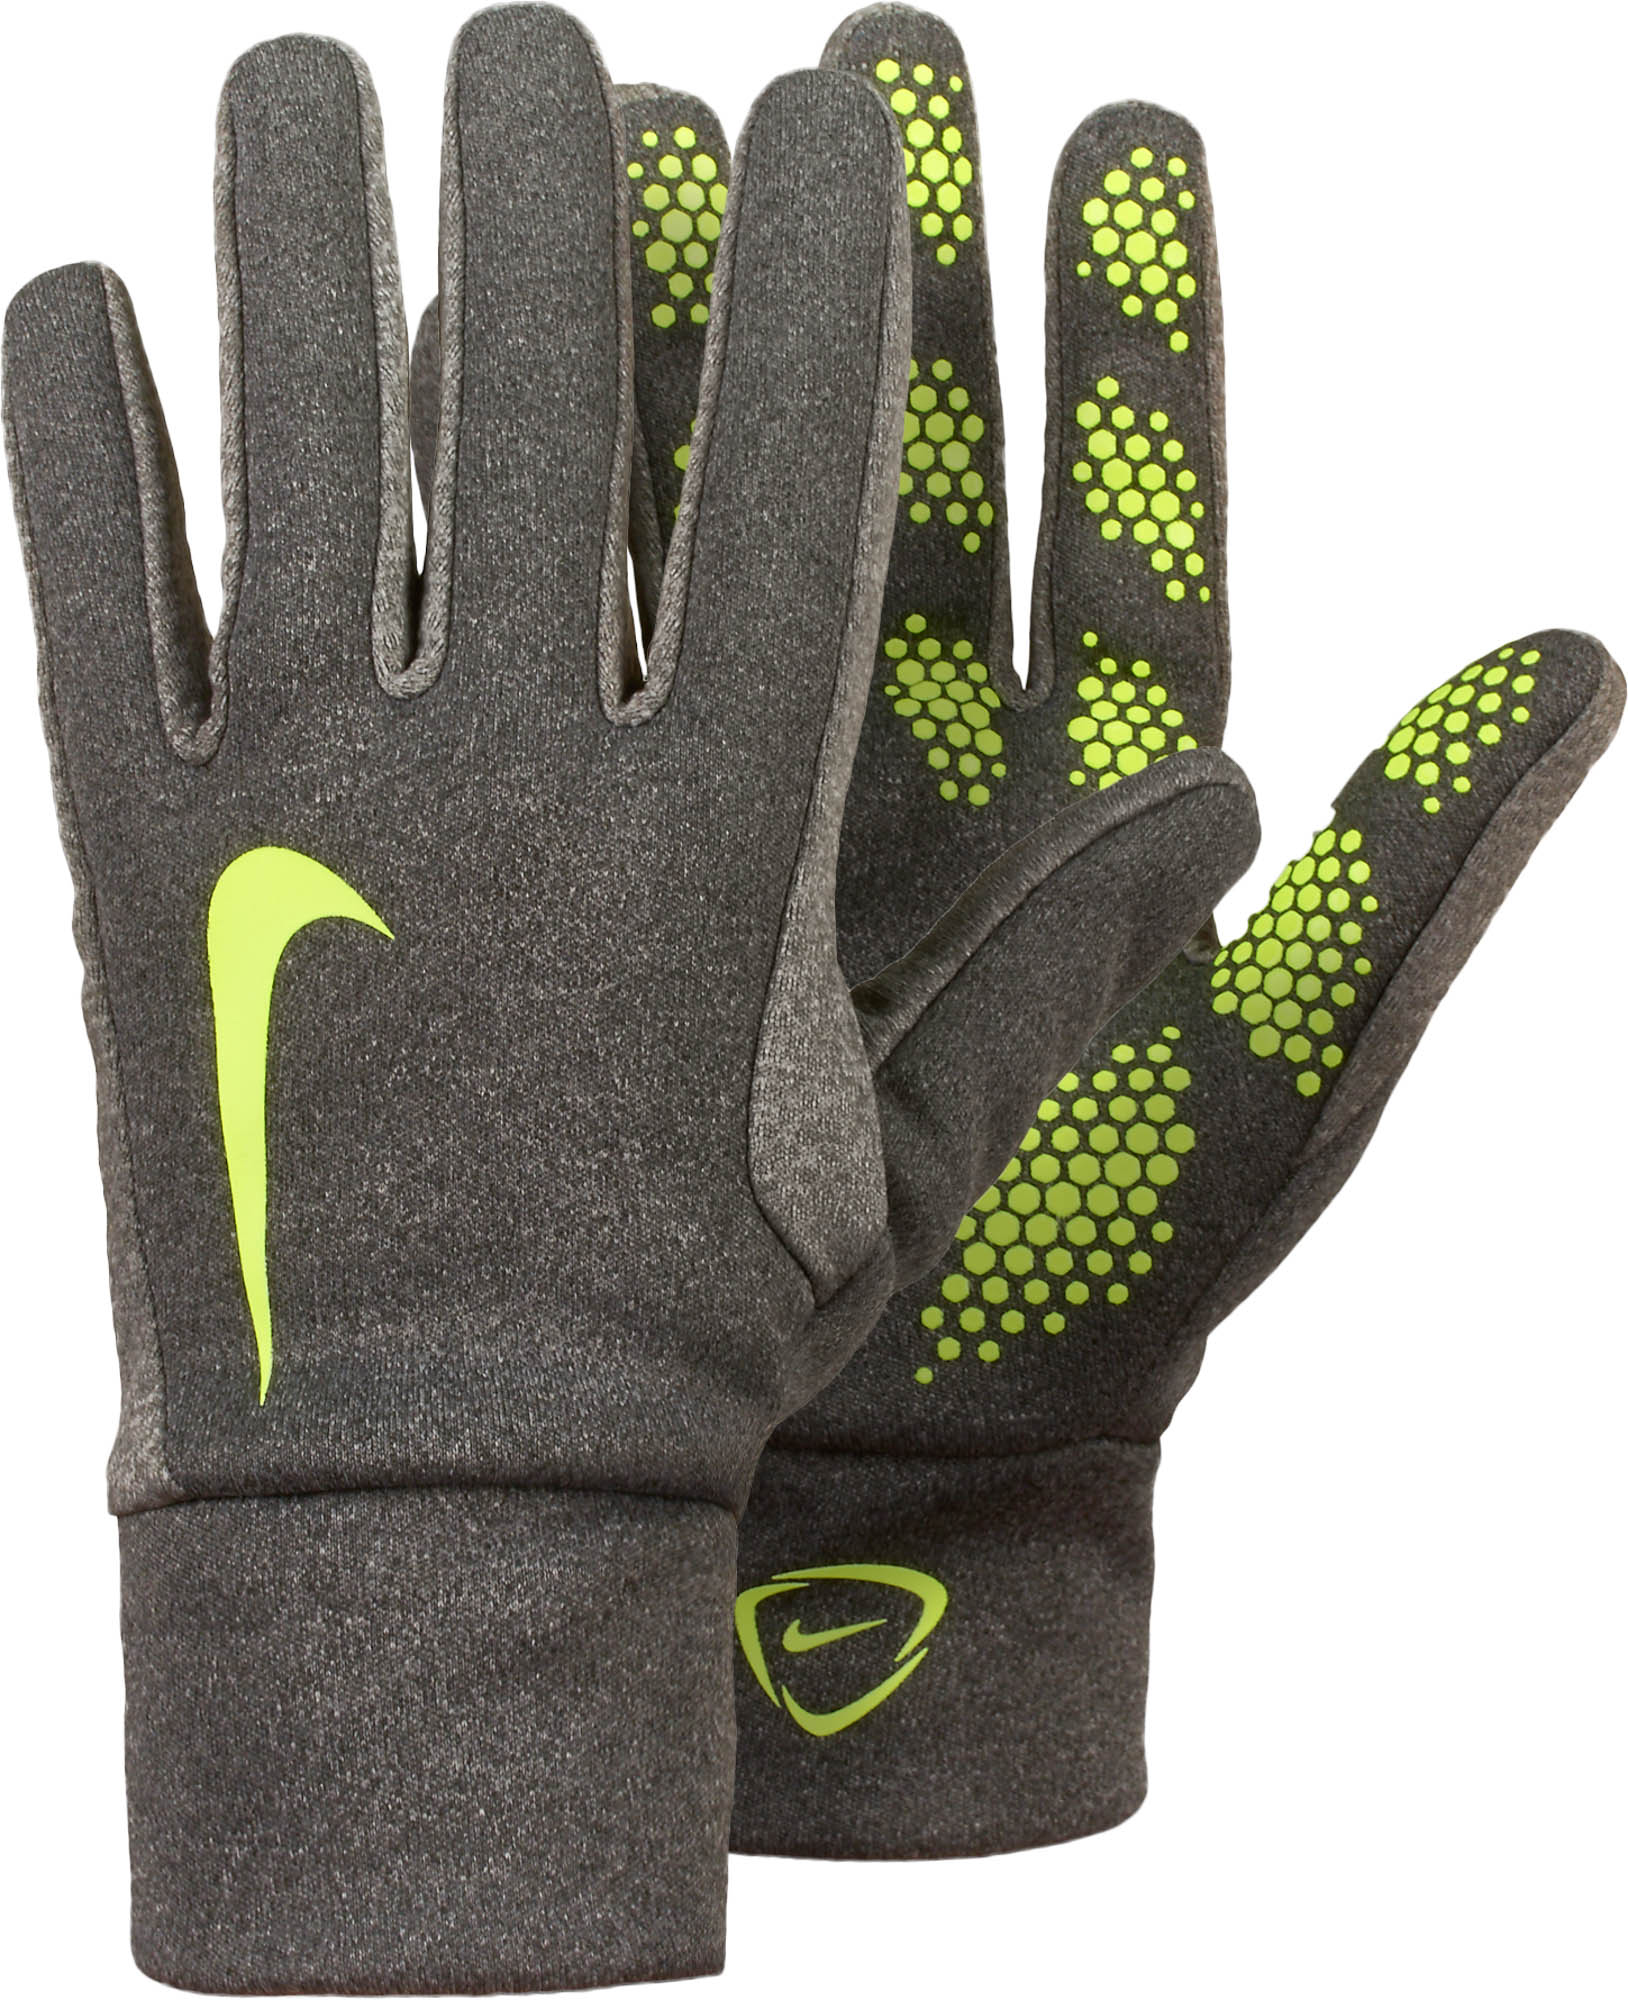 Nike Gloves Hyperwarm Cheap: Nike Hyper Gloves, Cheap Air Jordans For Sale